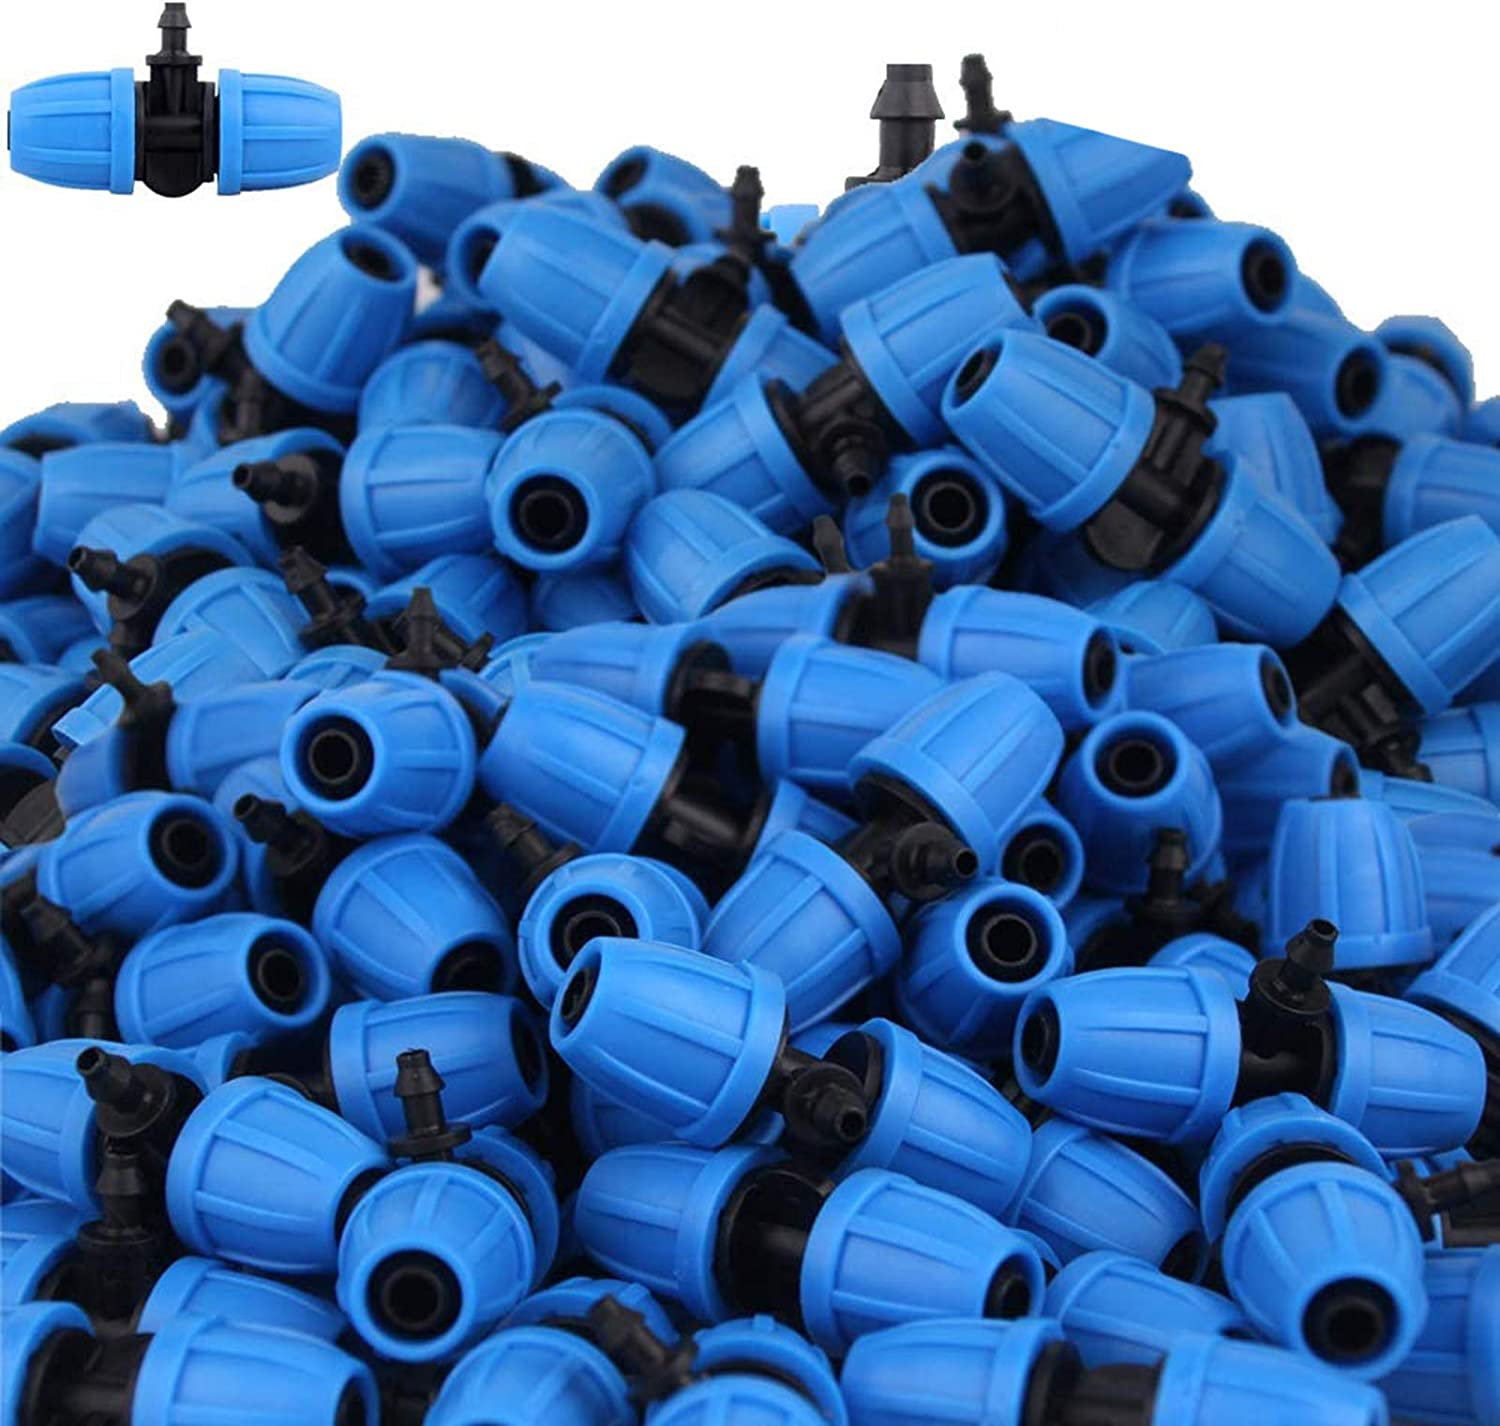 Lock nut T-Shaped Special-Shaped Three-Way Connector is Converted from 8-12/9-12 Hose to 4/7mm Hose/Garden Irrigation Watering System accessories/30 pcs (Blue 02)